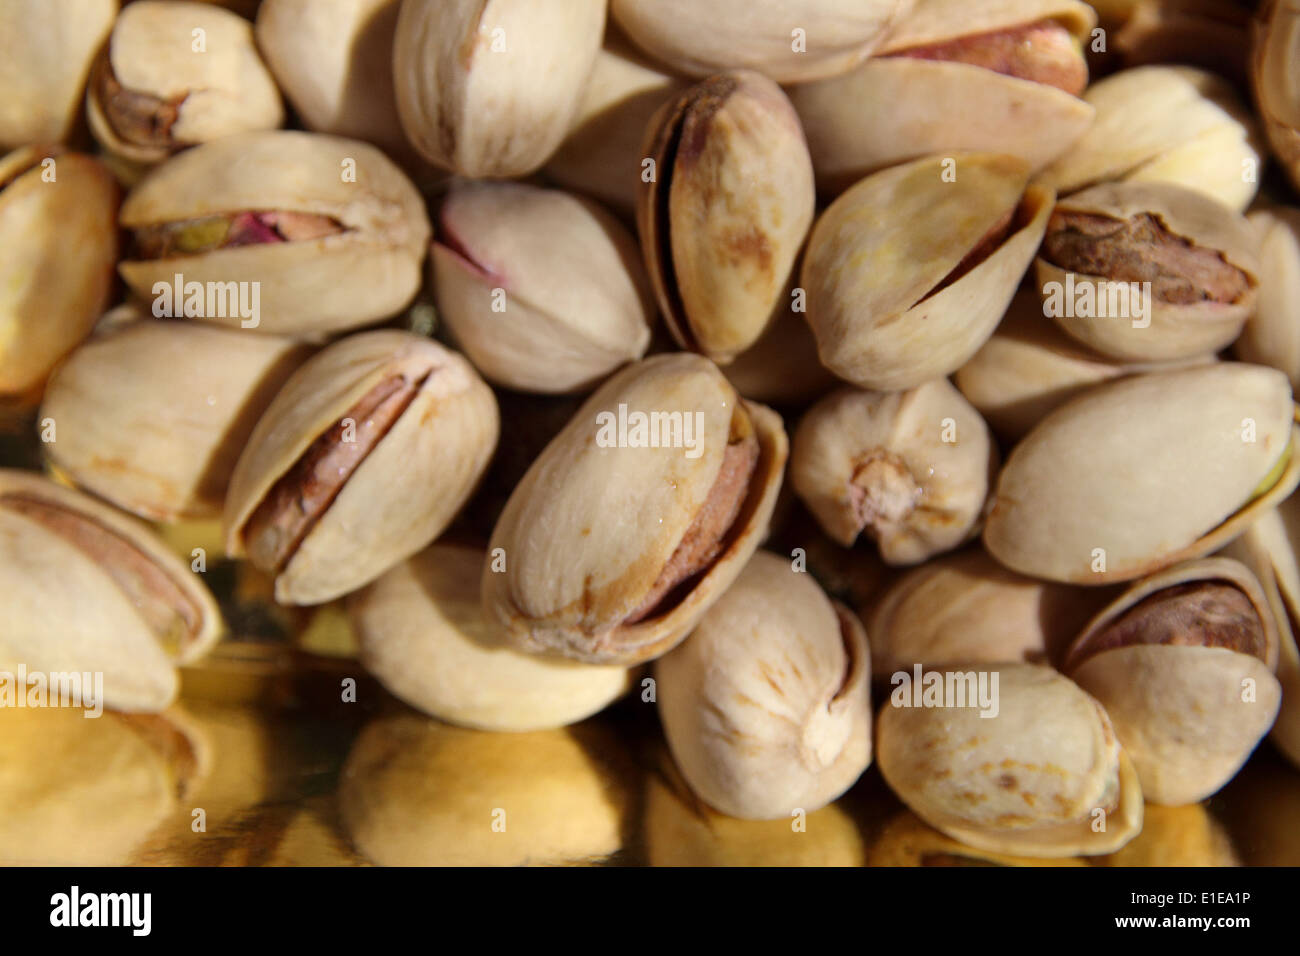 Pale green, edible pistachio nuts enclosed in hard yellow shells are nutritious, rich in vitamins and minerals - Stock Image